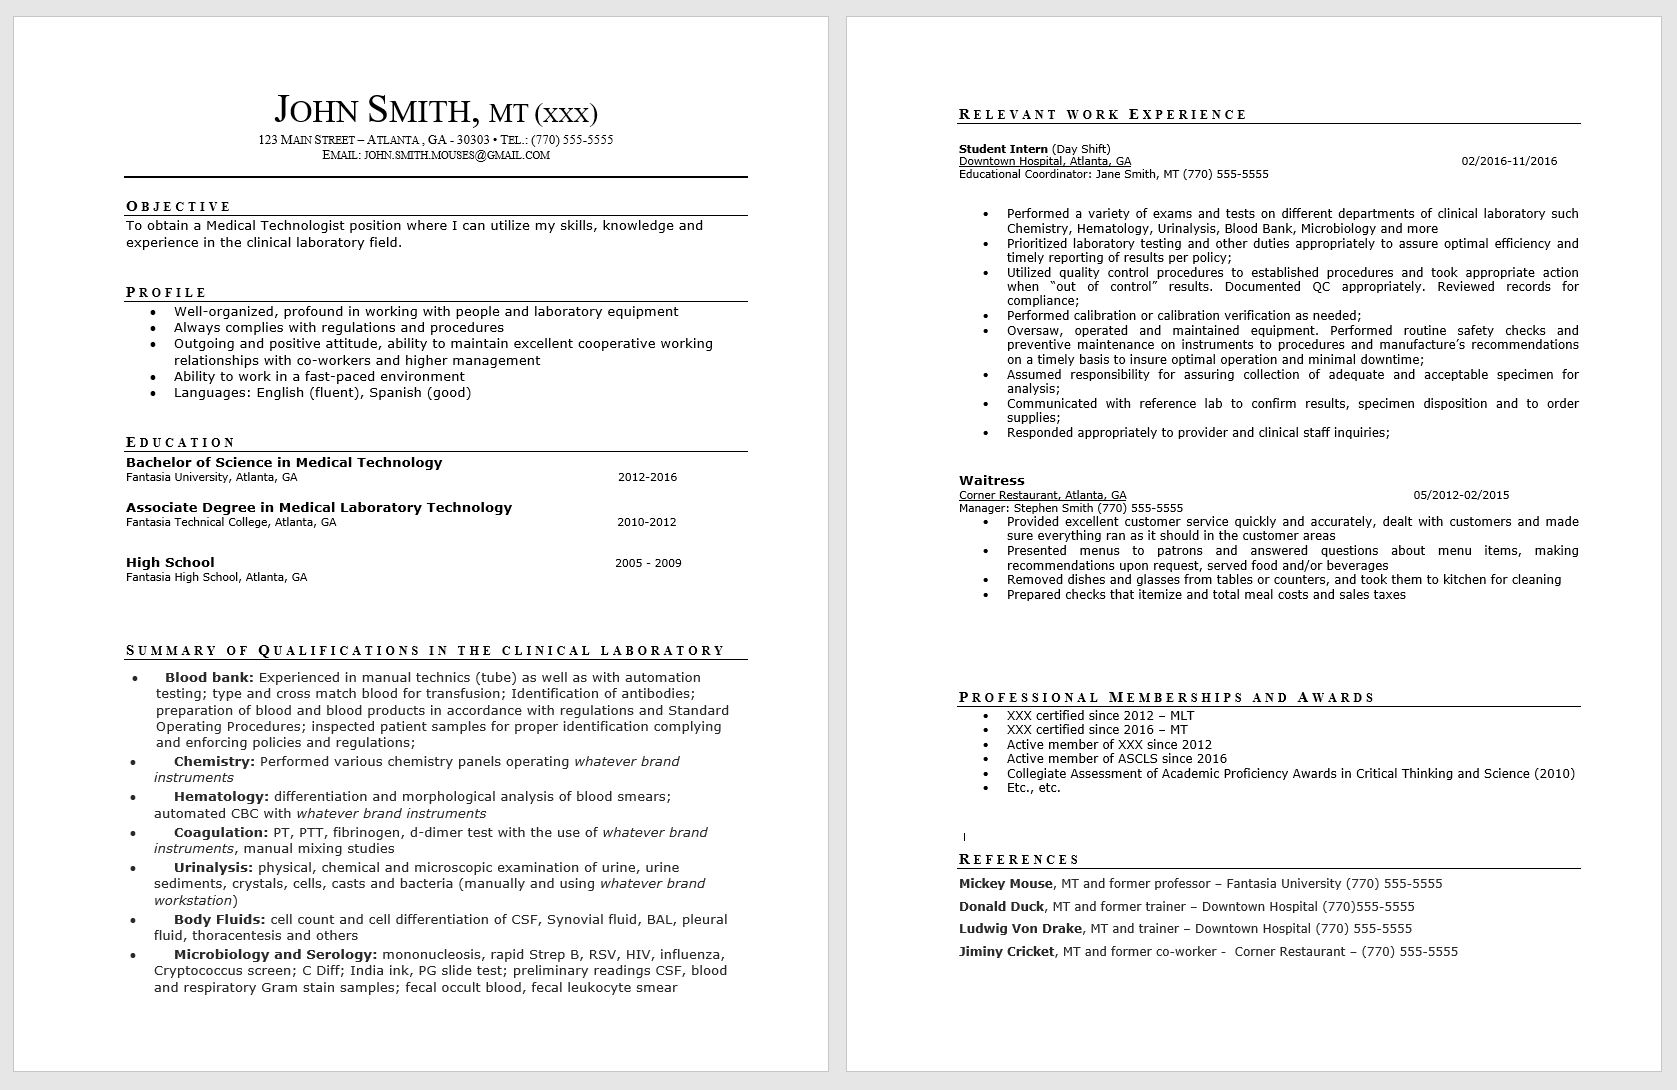 Create Your Core Resume With An Objective And Profile For A Generalist Med  Tech. This Version Of Your Resume Can Be Used For Any Job Application.  Clinical Laboratory Scientist Resume